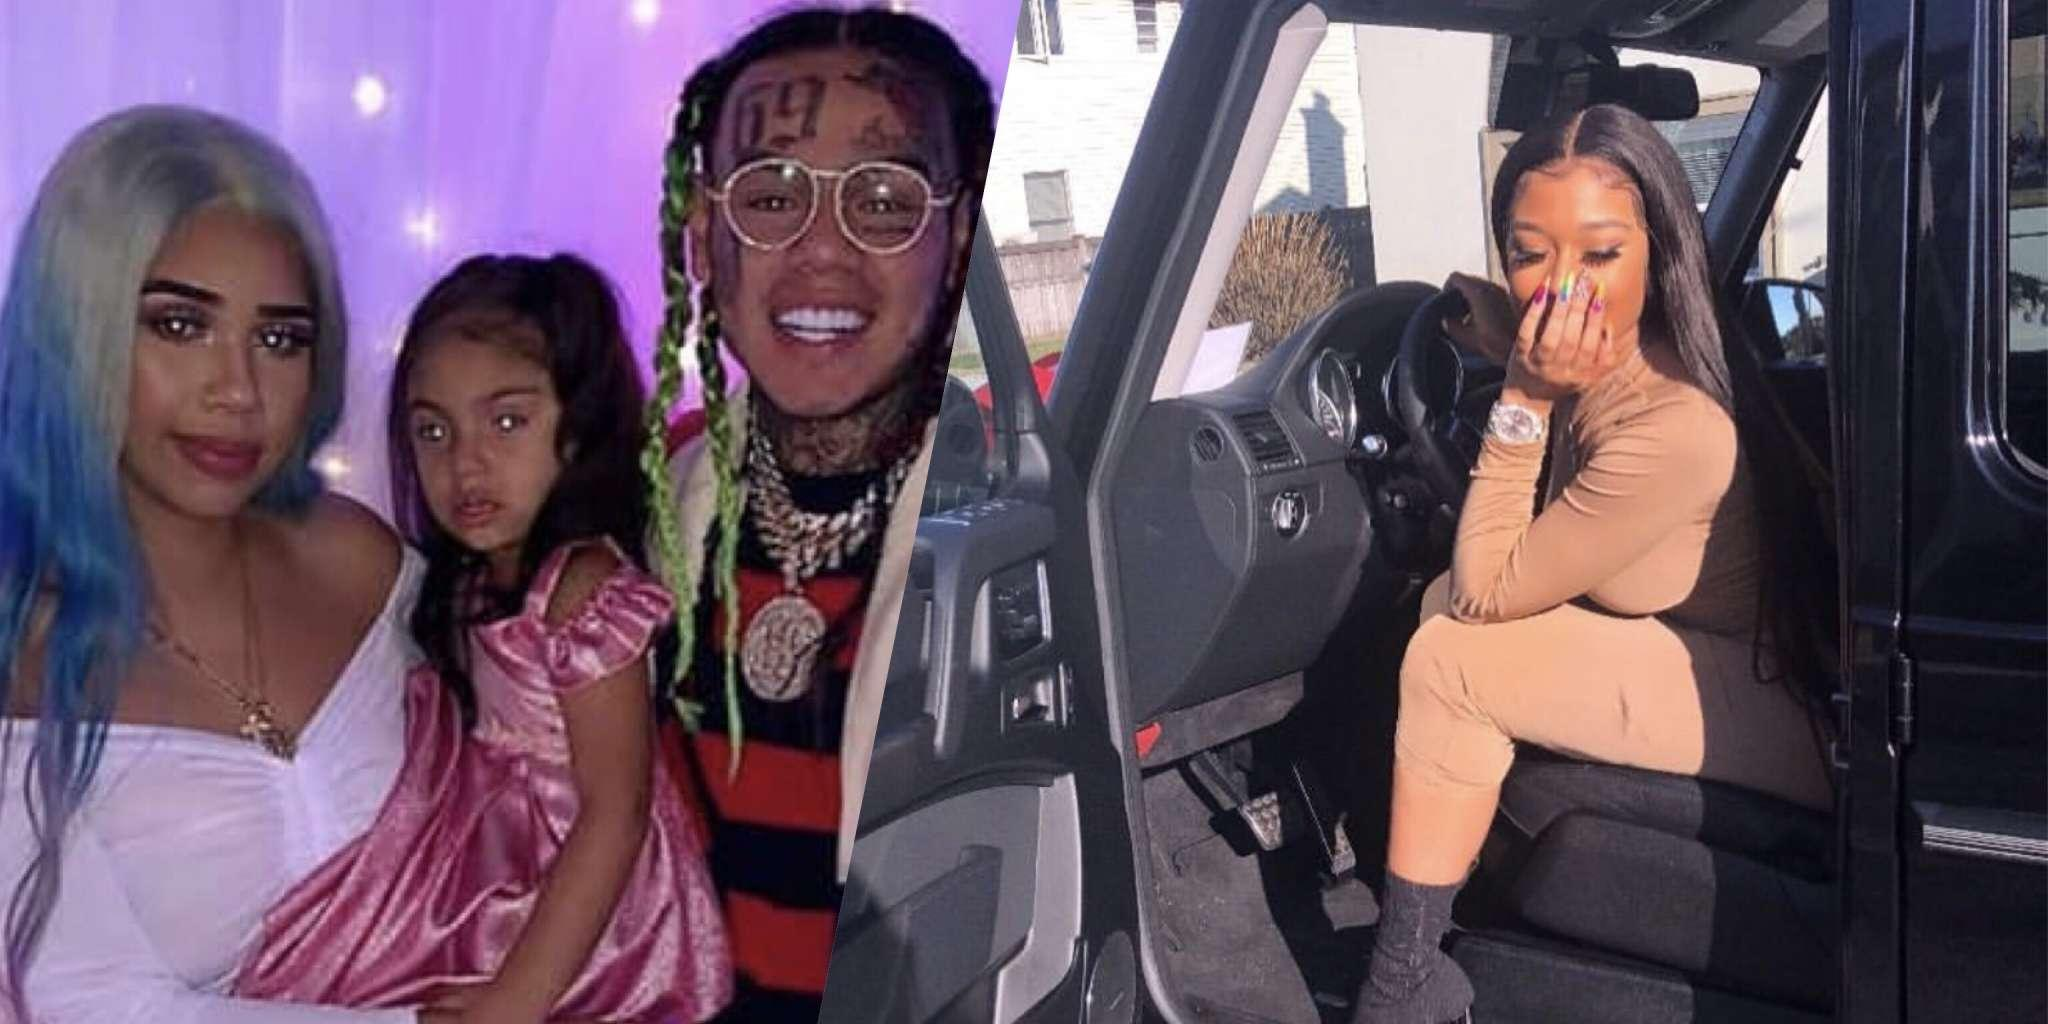 Tekashi 69's Baby Mama, Sara Says His Snitching Puts Her Family At Risk And His GF, Jade Slams 'Washed Up' Rappers Such As Snoop Dogg Who Accuse 69 - Watch The Video